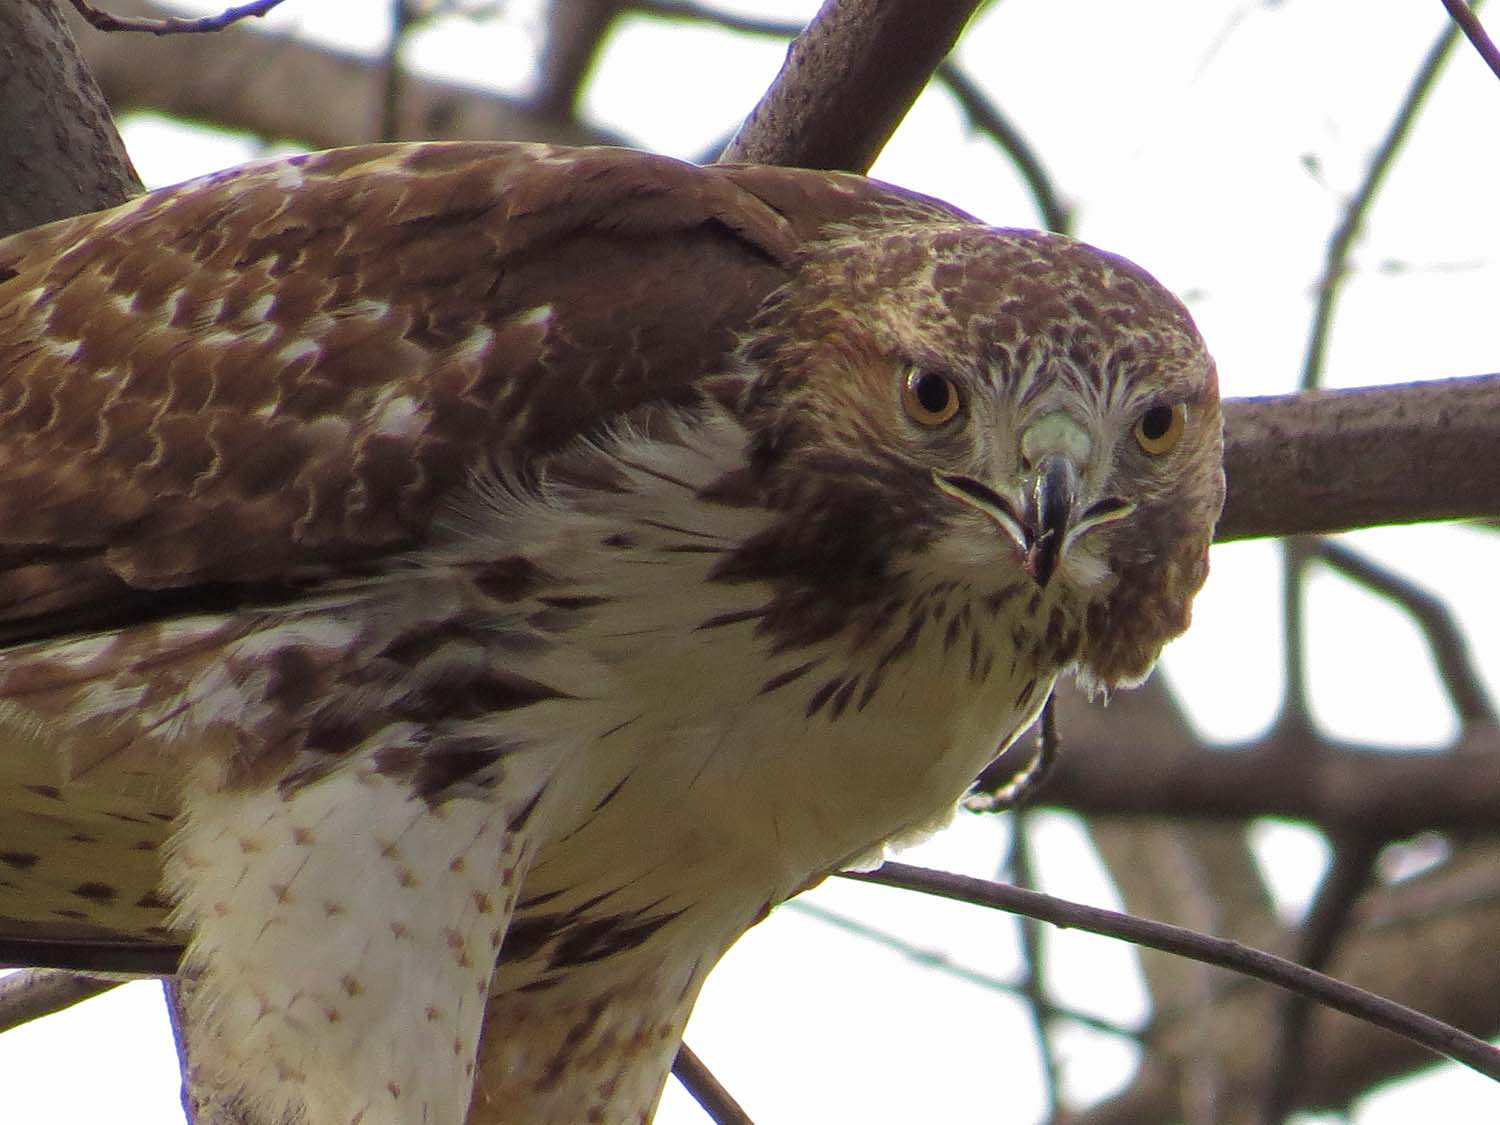 First-year- red-tailed hawk, south of Bethesda Fountain, Central Park, Jan. 12, 2017